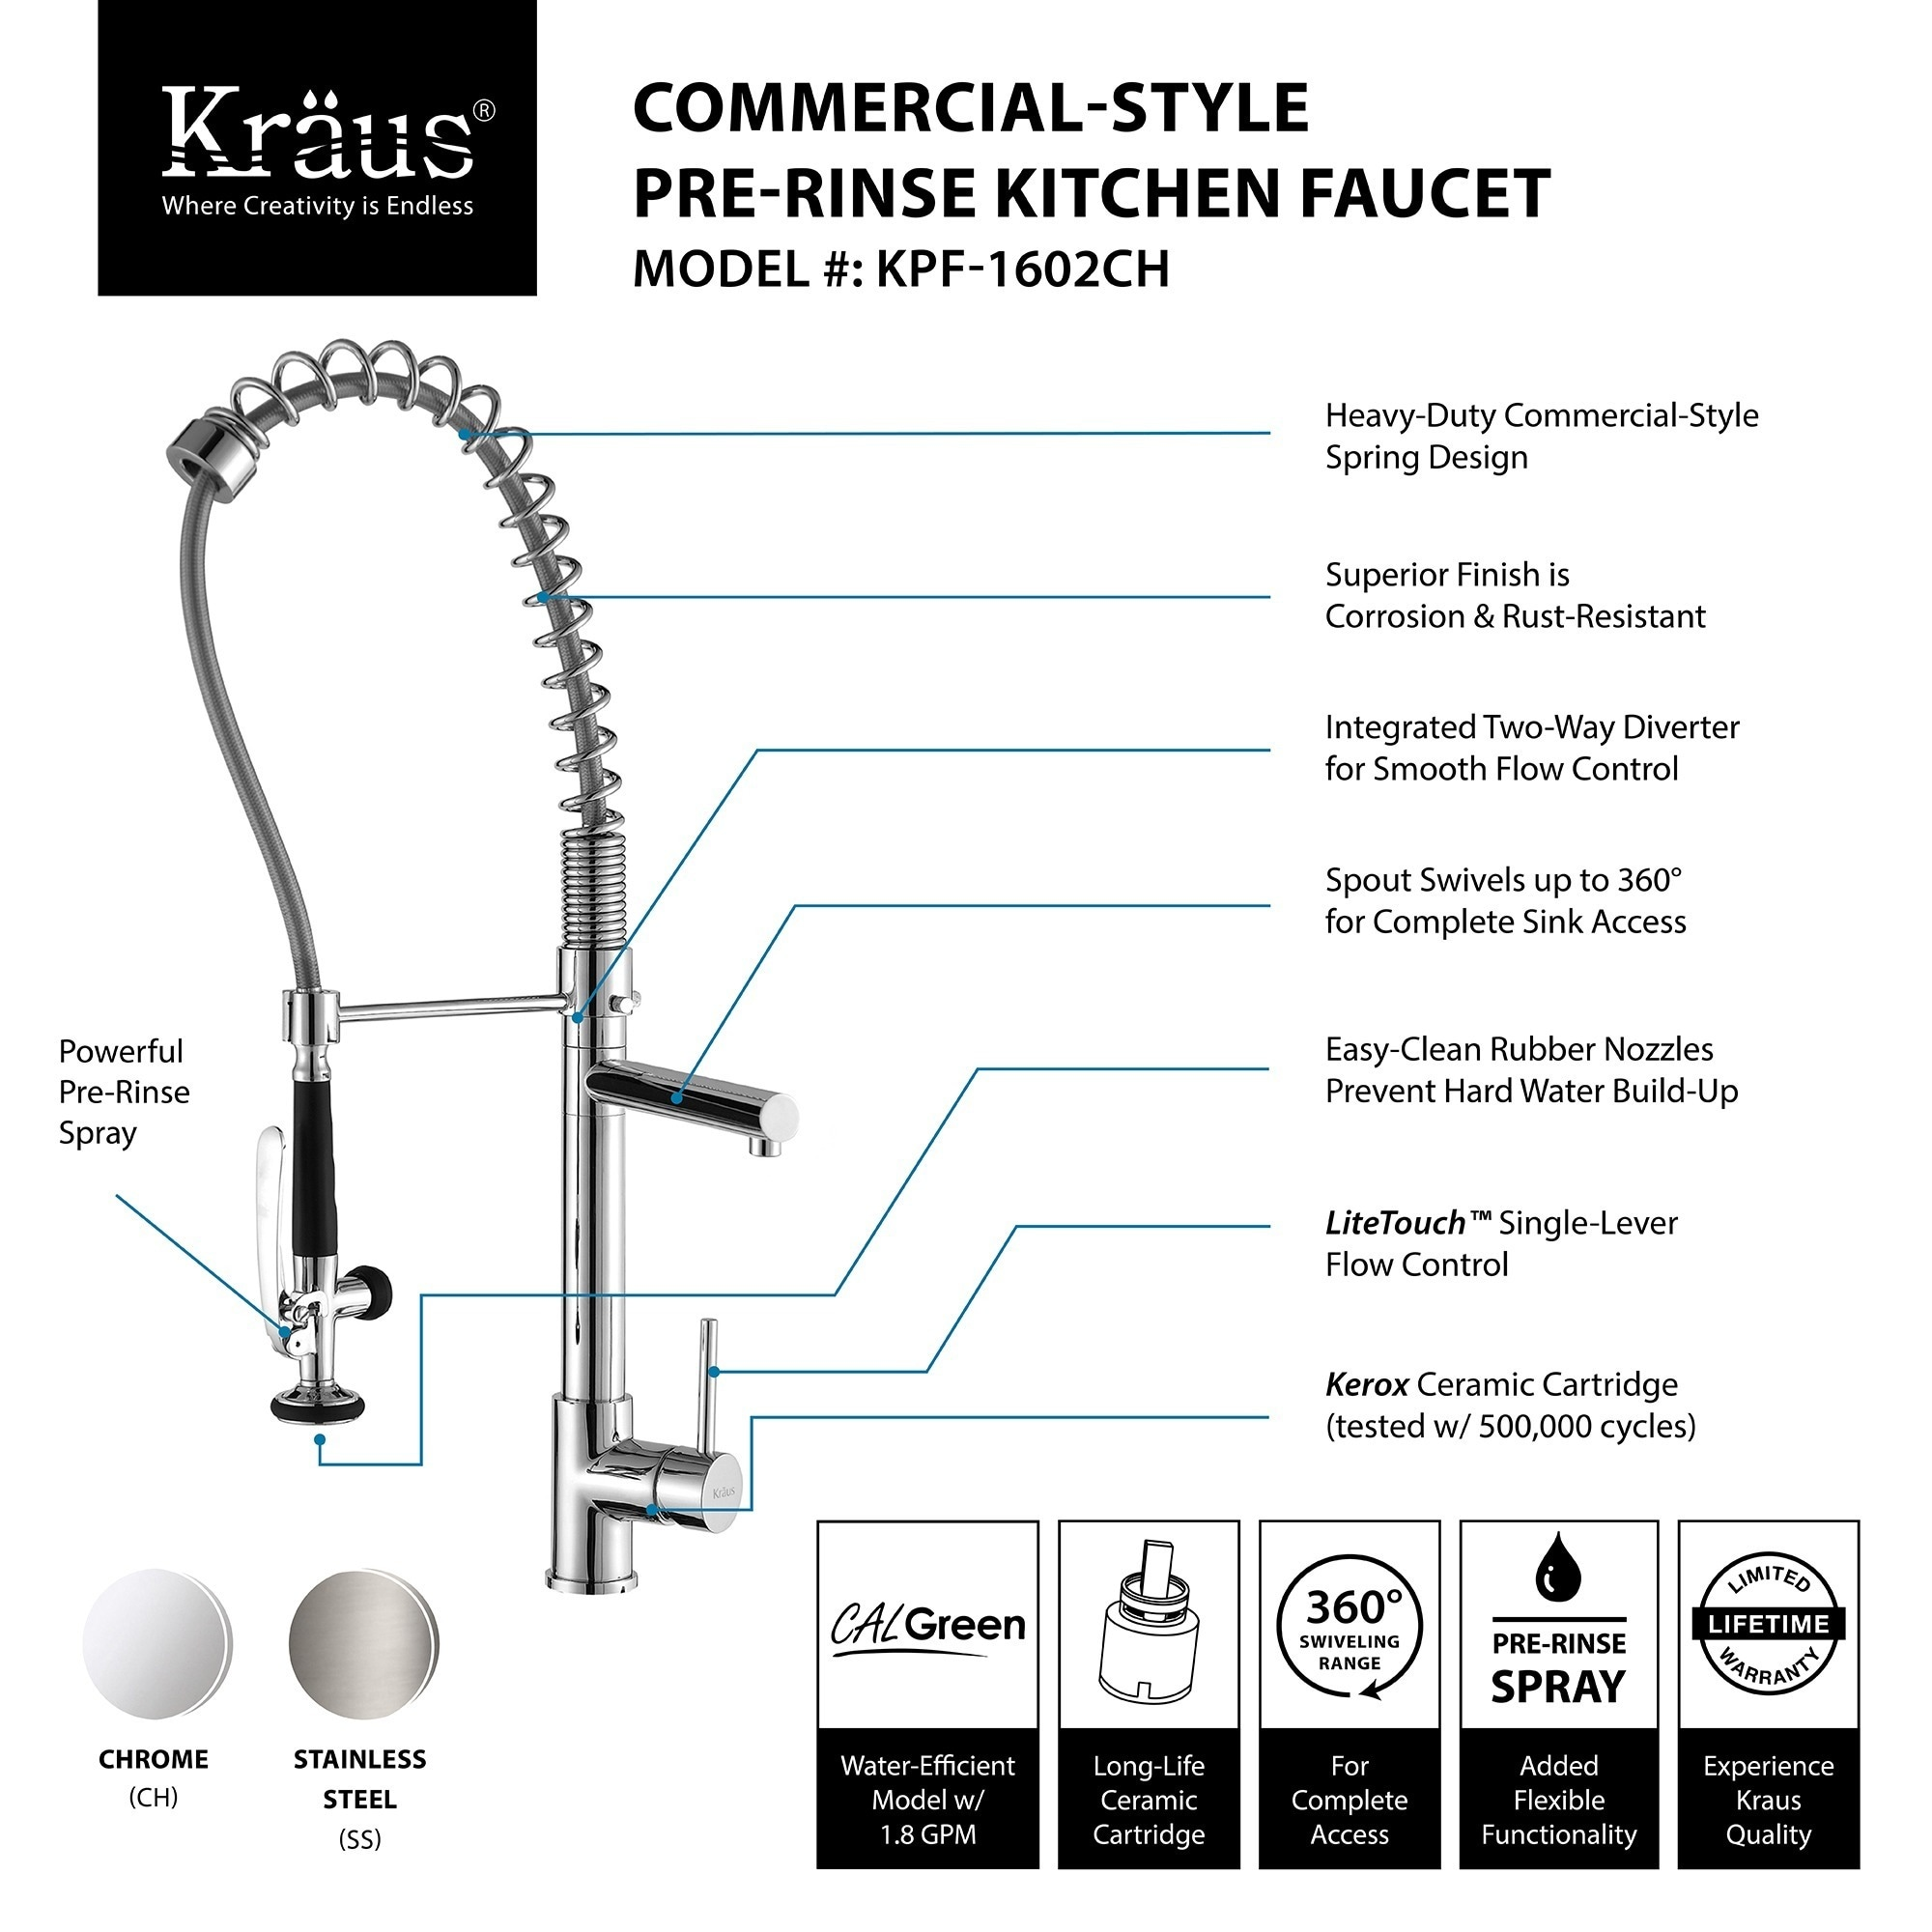 inset incredible full with sinks stainless sprayer nsf bank size wall sink inspirations faucets arvest photo aramark hand faucet ararvest gridmann of mount steel commercial kitchen